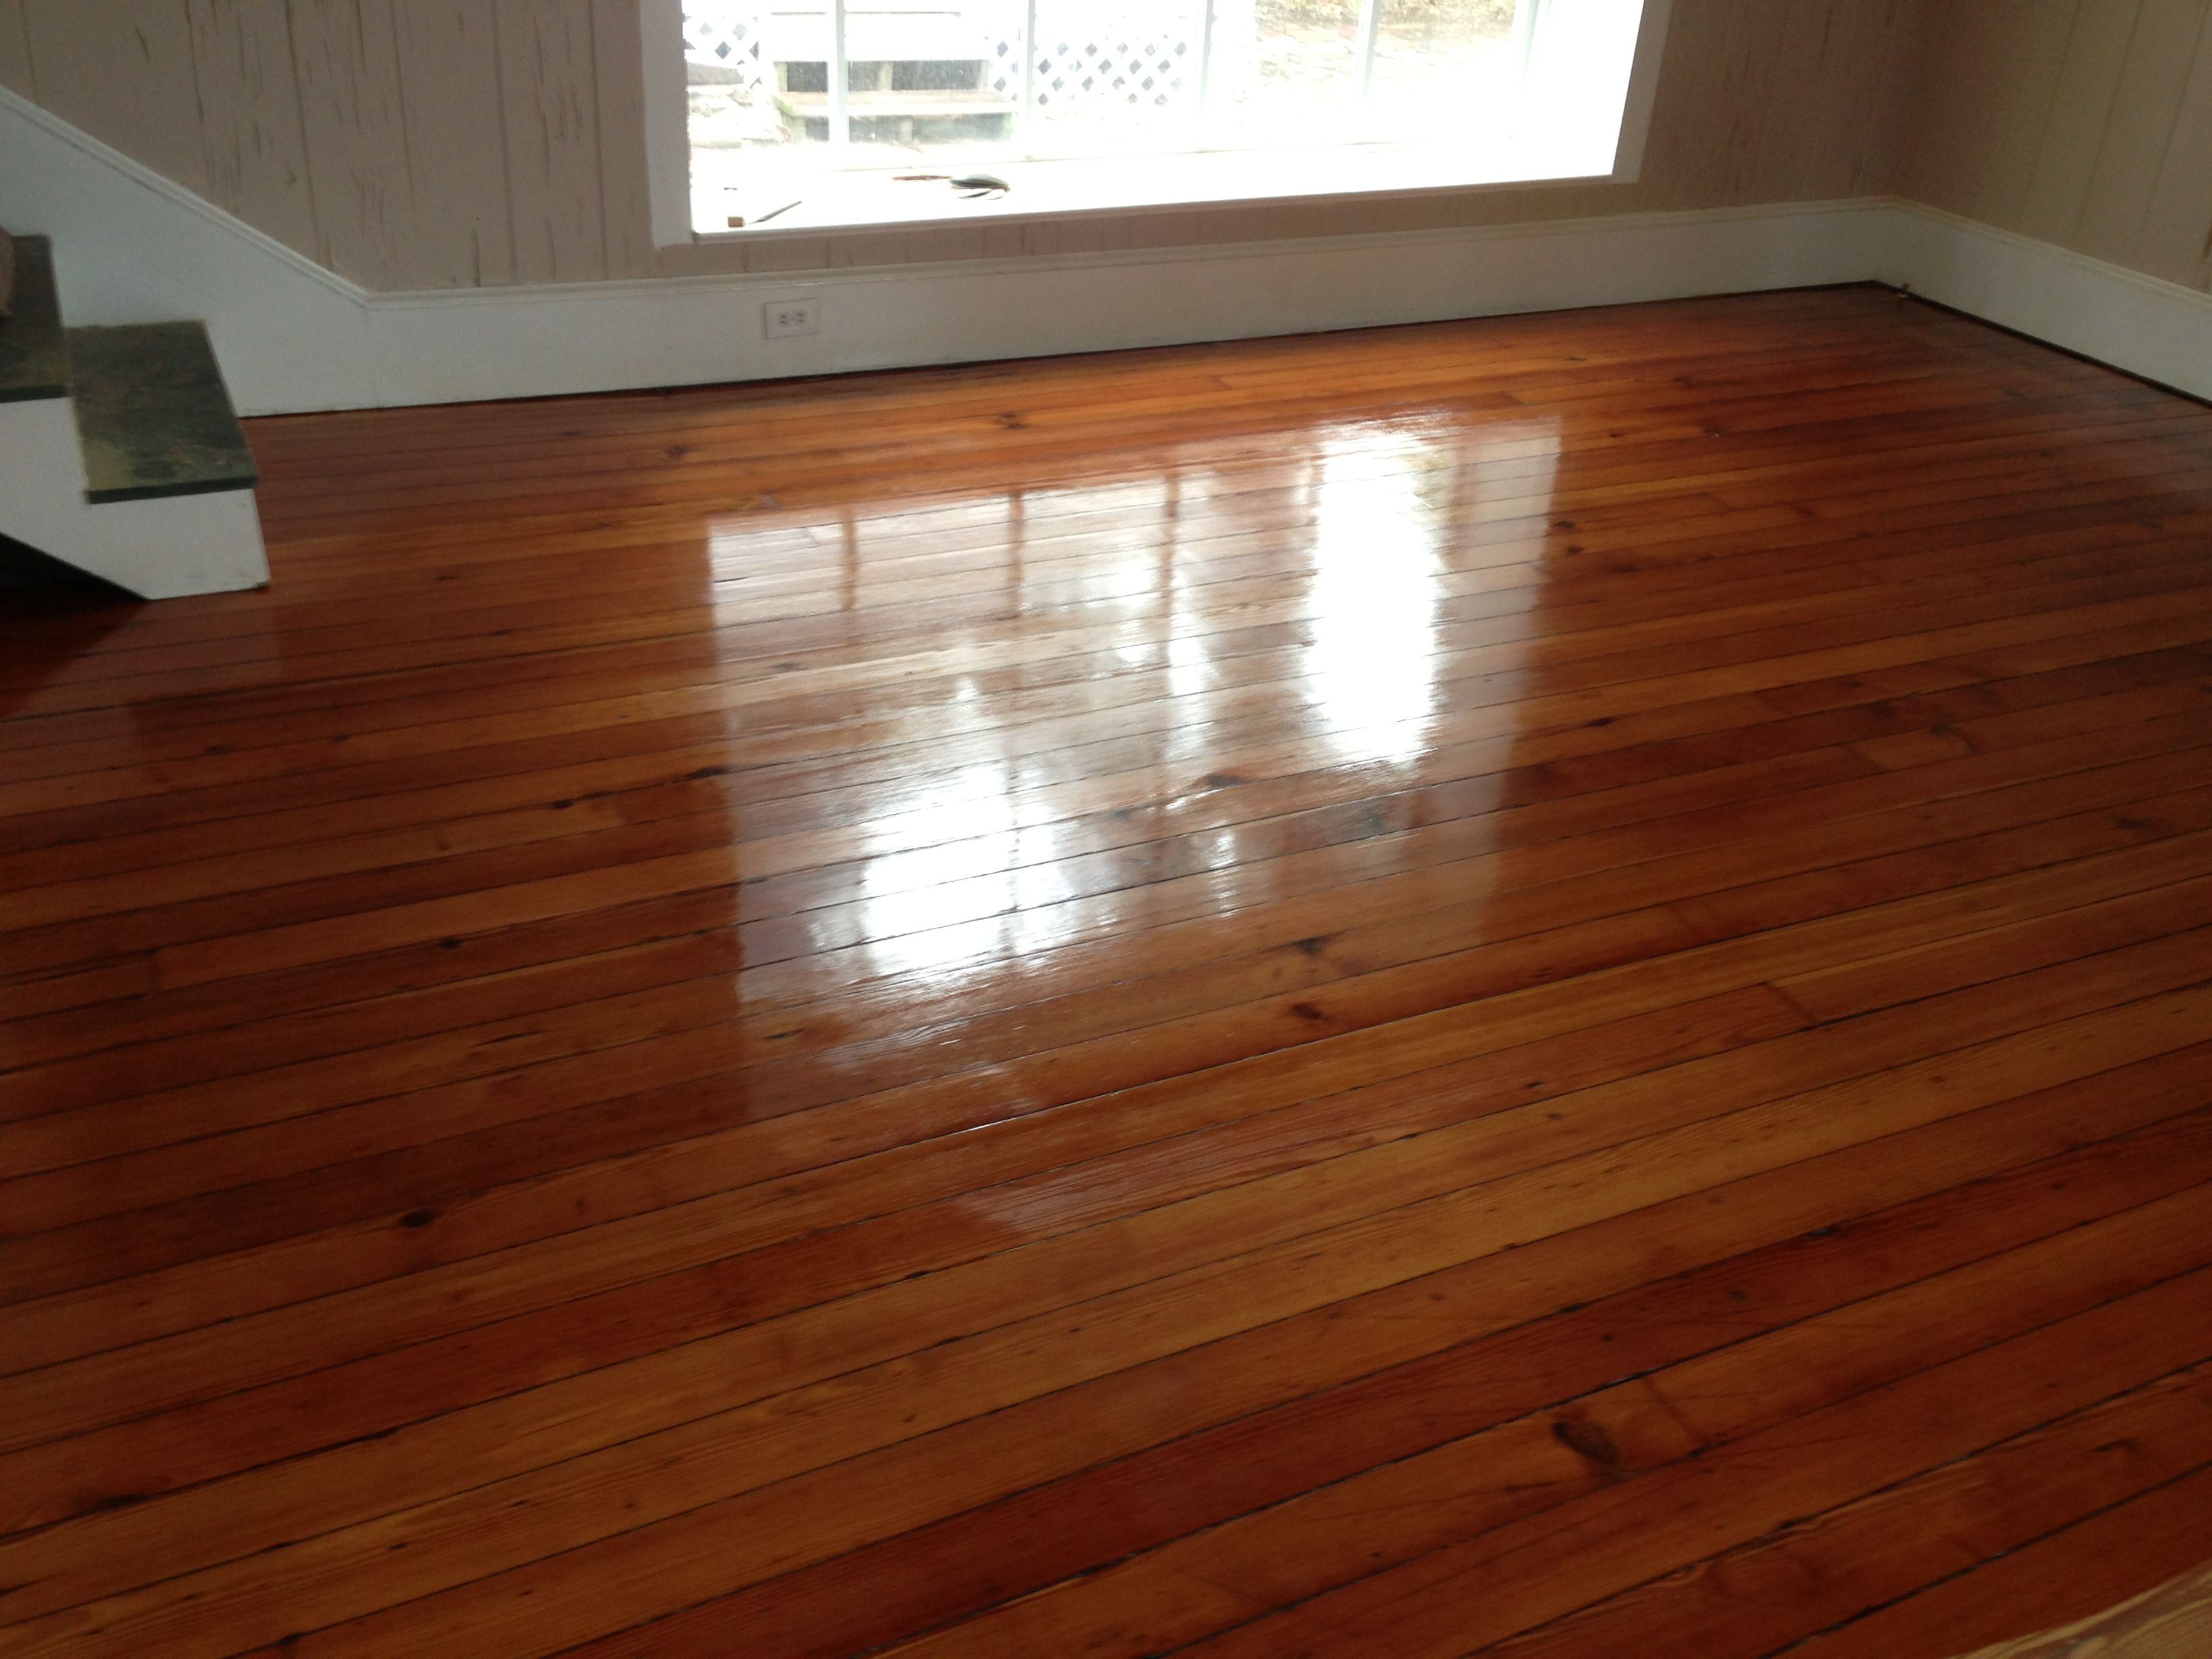 Heart Pine Solid Wood Flooring Refinish Project During Coating